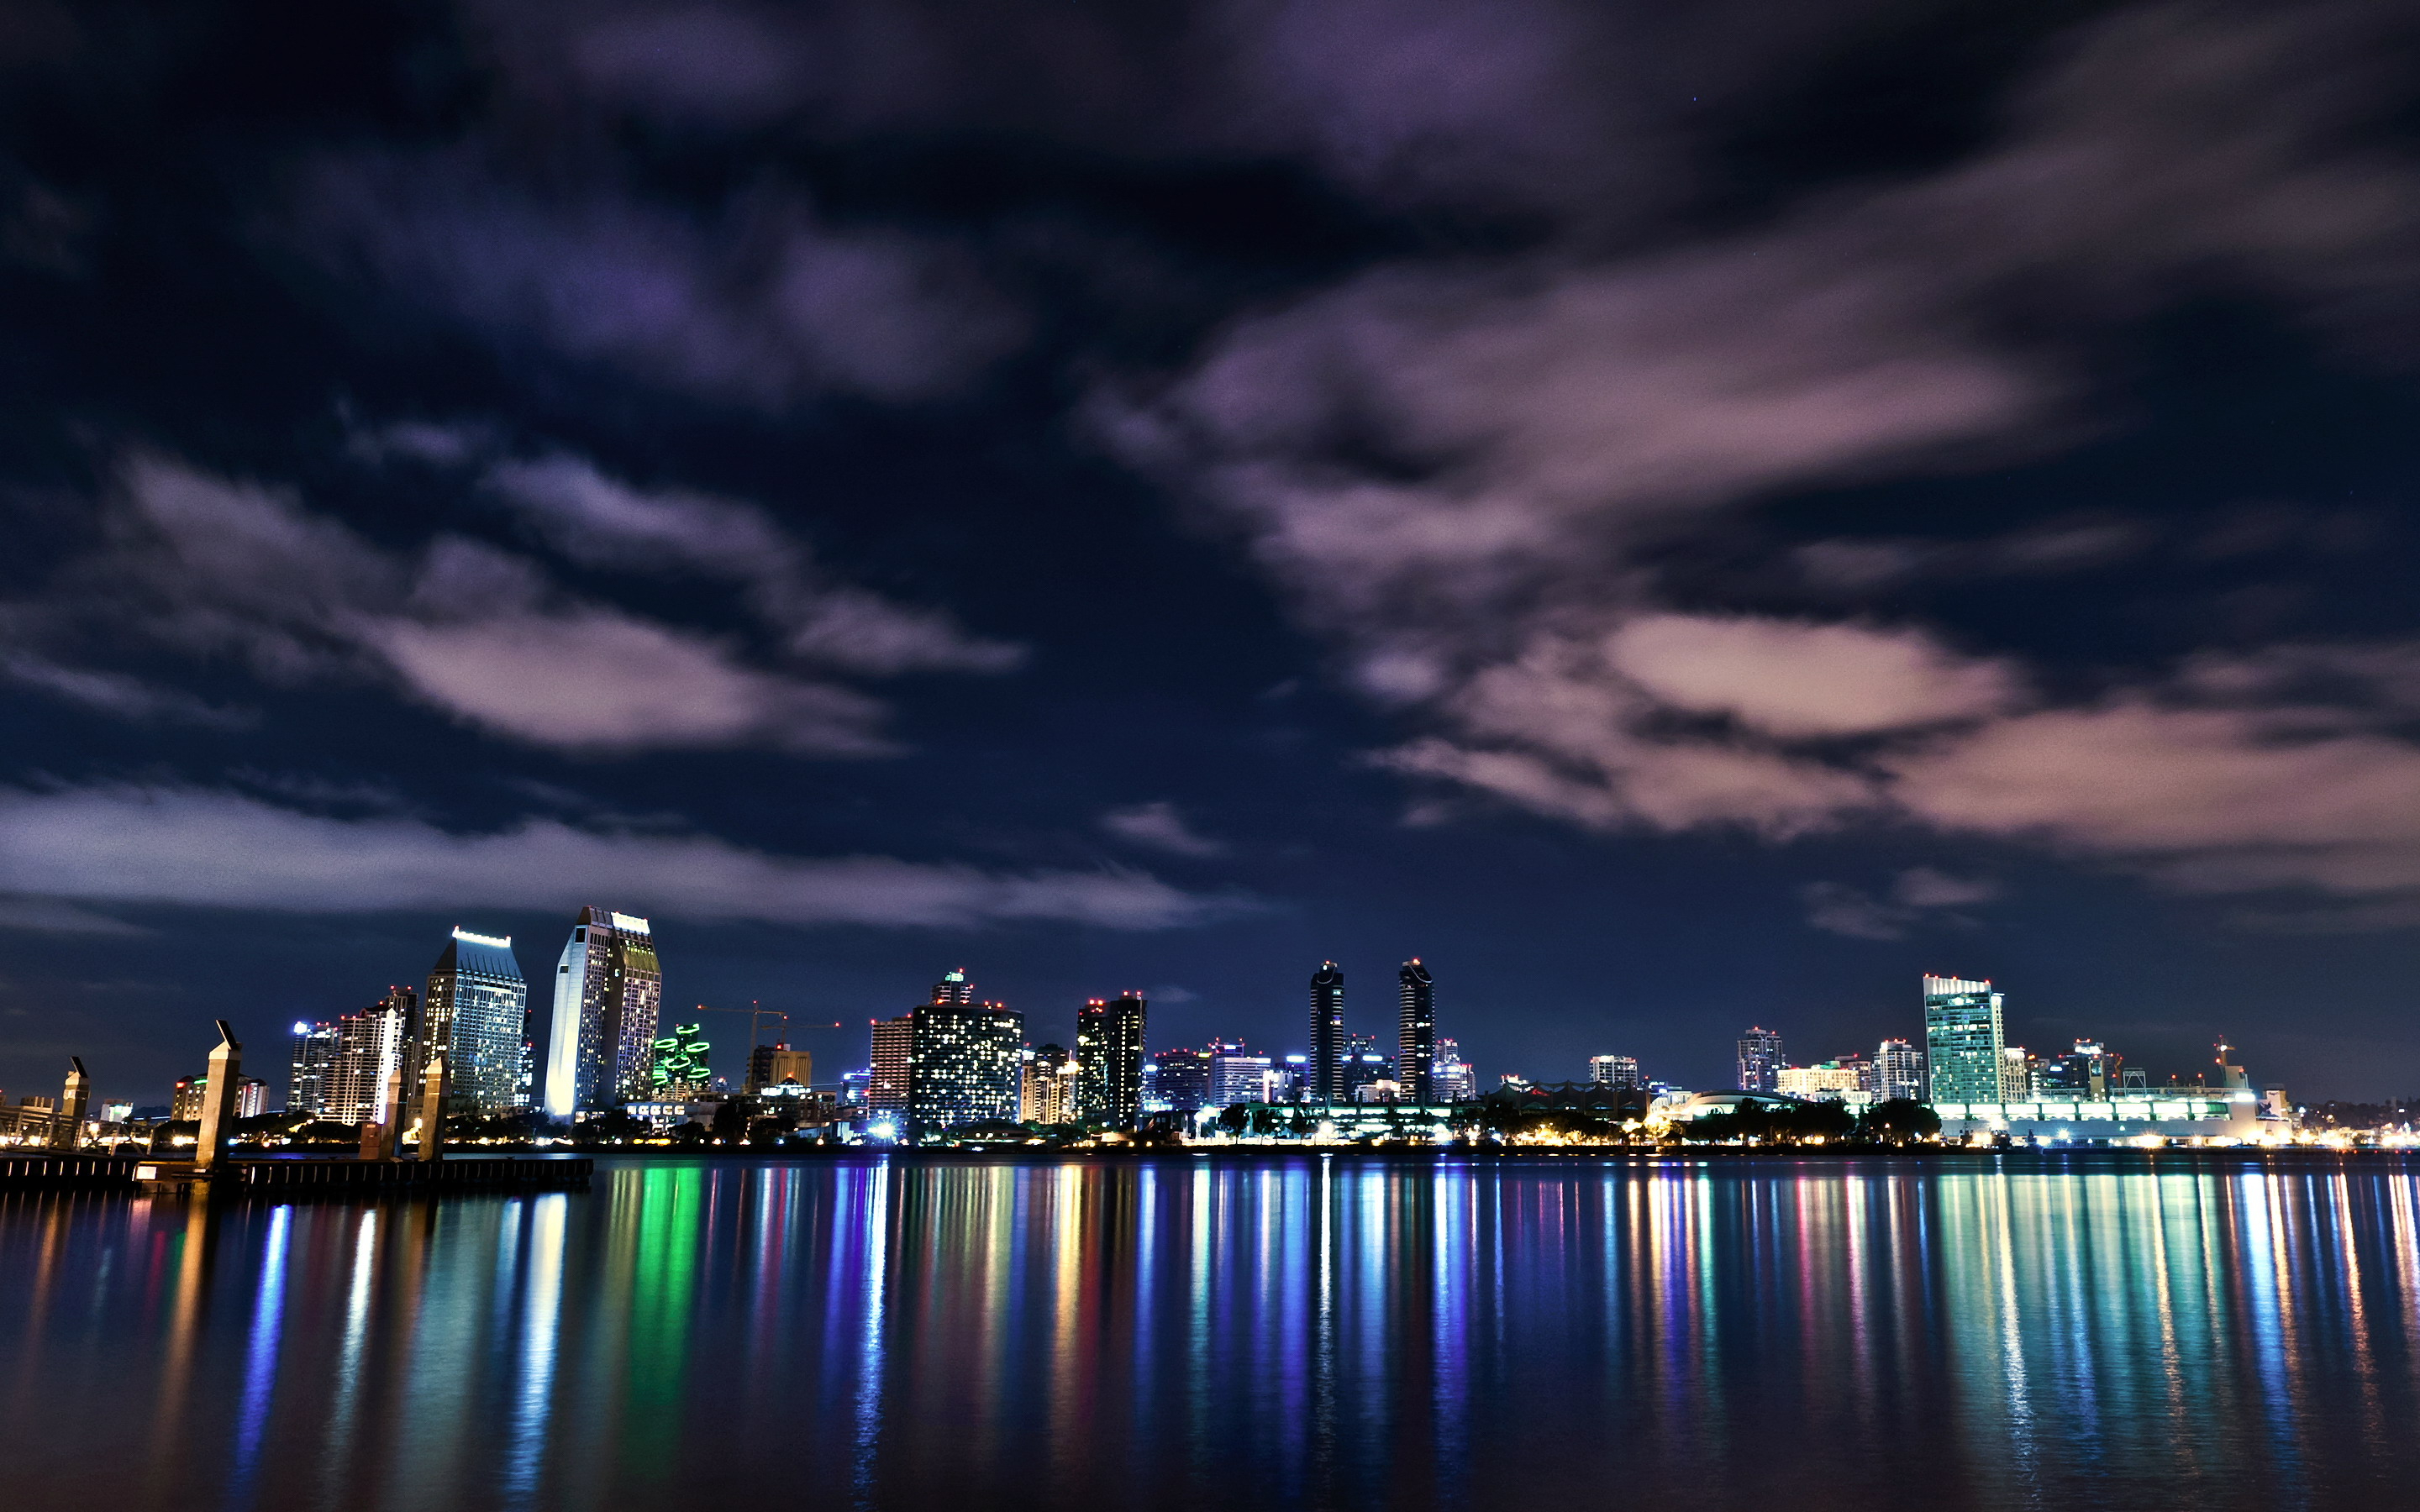 Amazing Wallpaper Night Cities - 313126-alexfas01  Perfect Image Reference.jpg